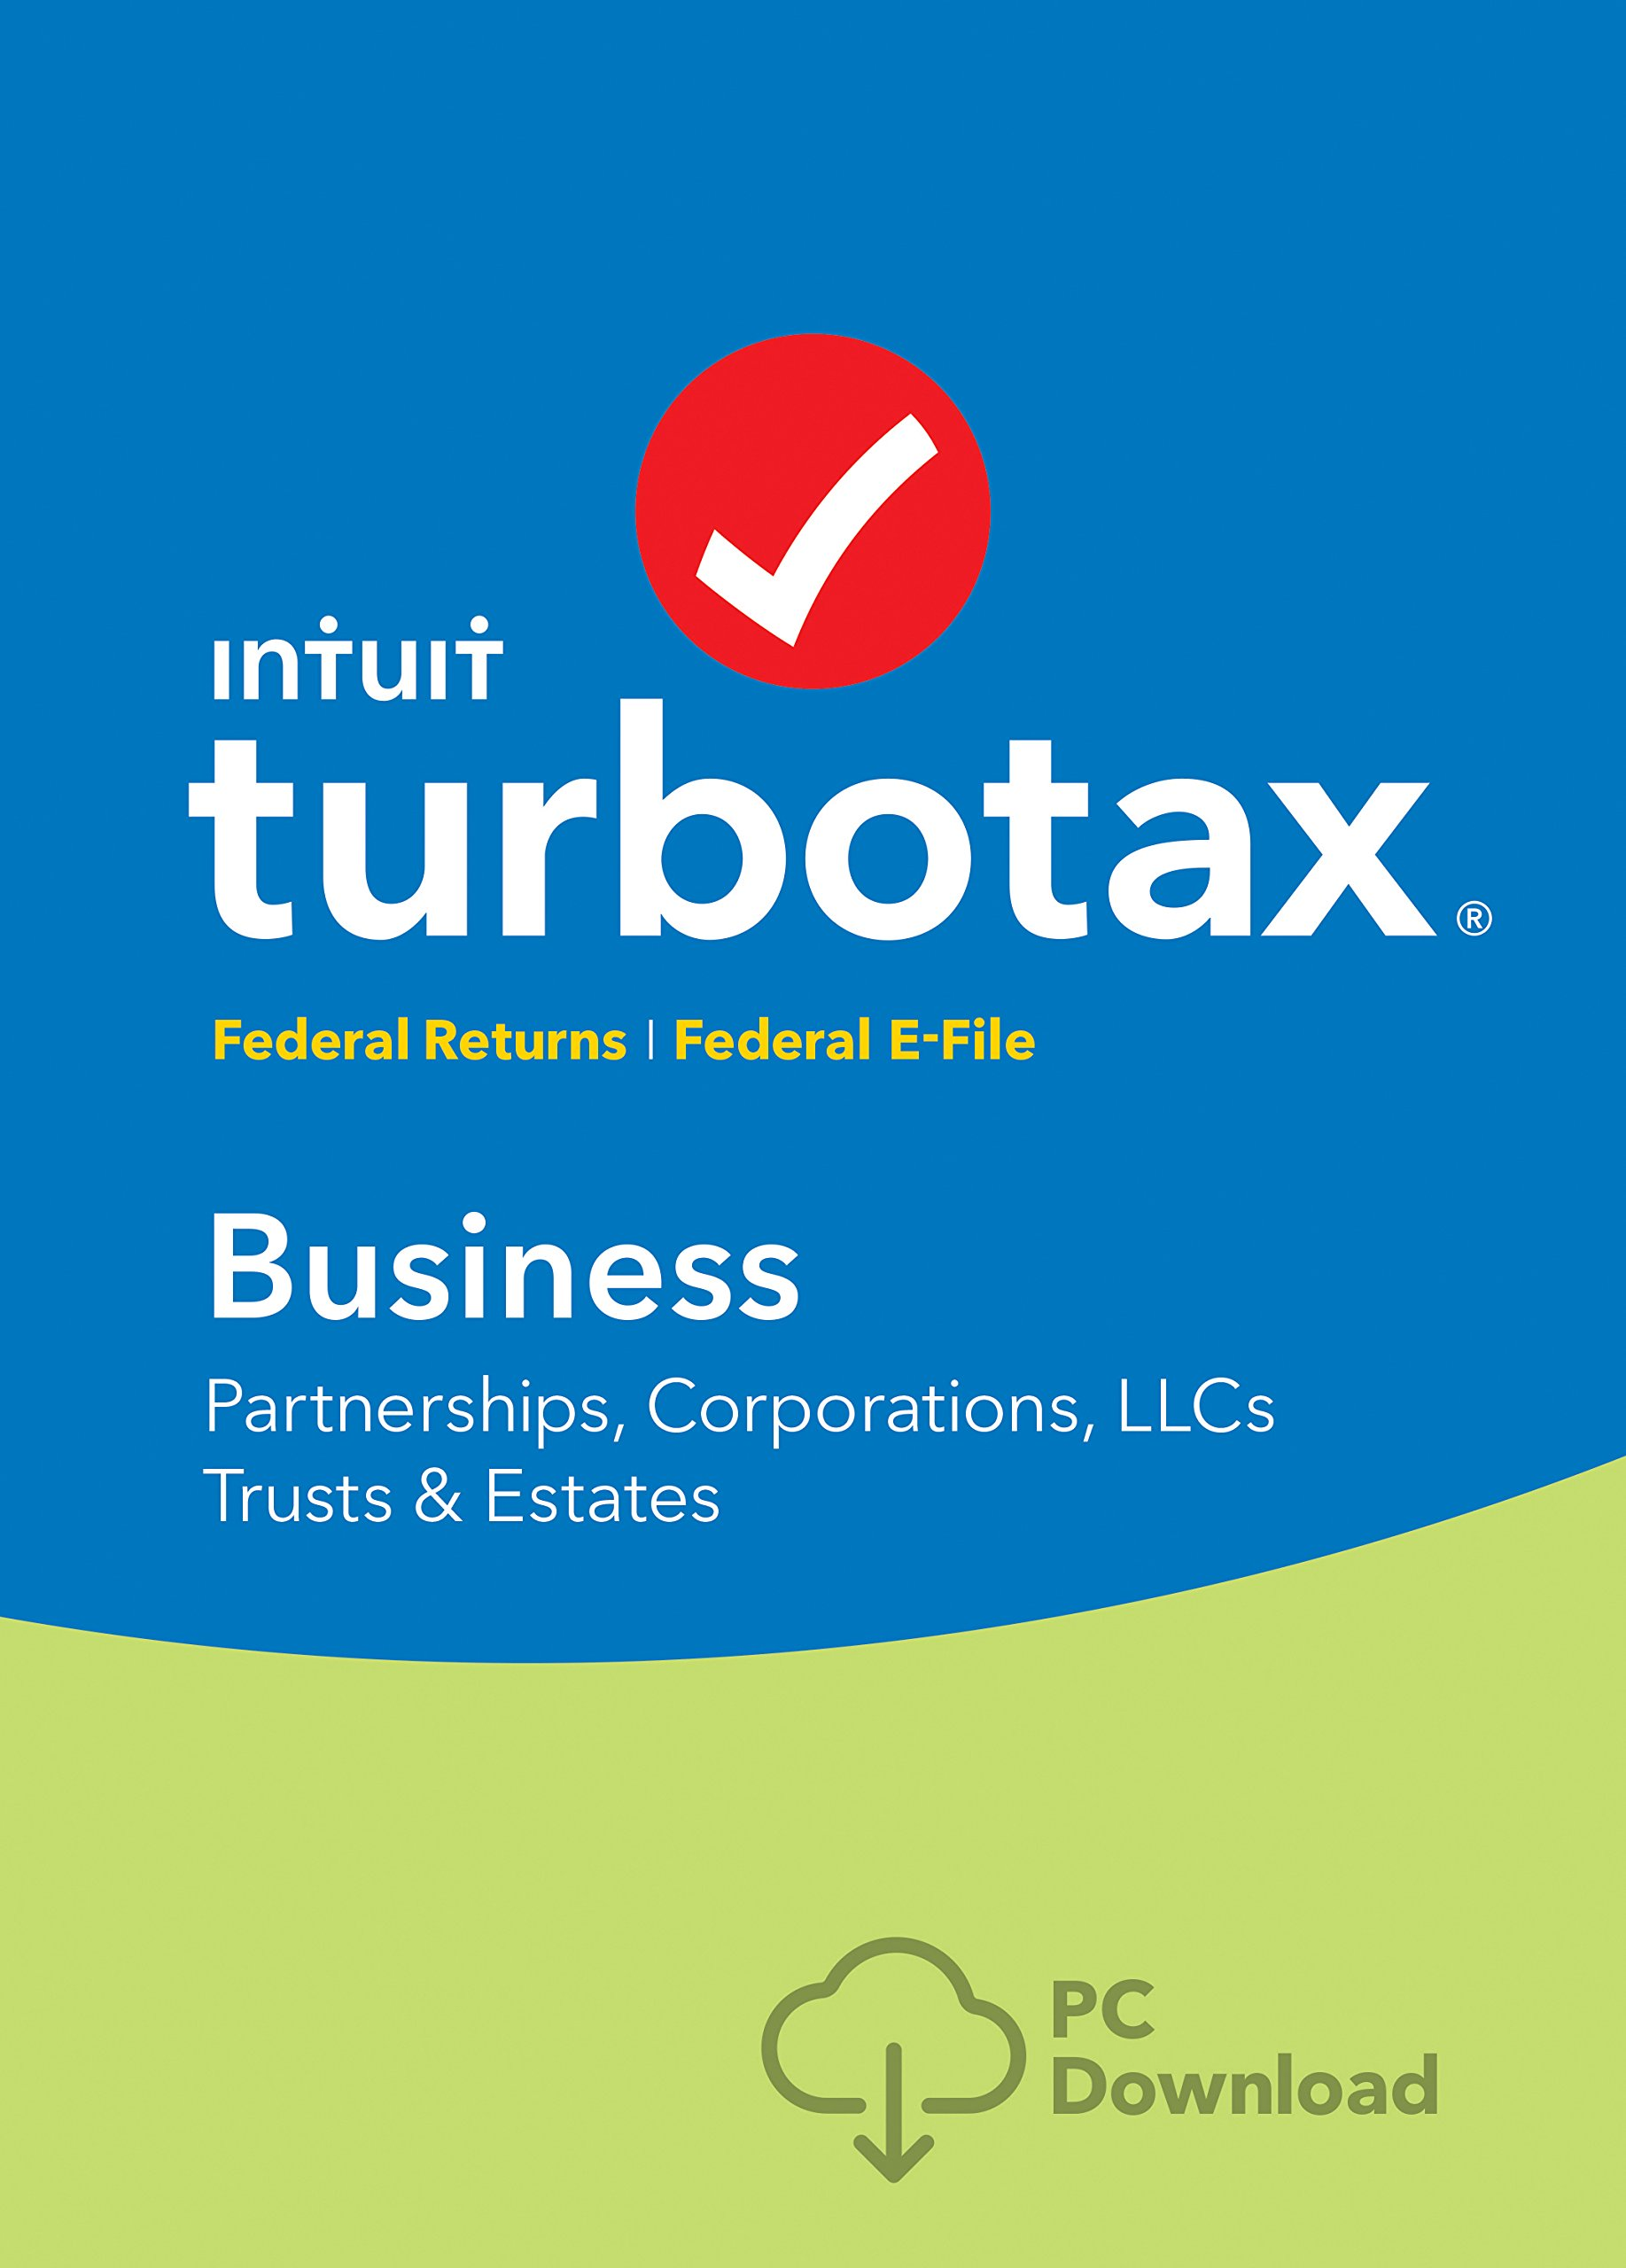 TurboTax Business 2018 Tax Software [PC Download] by Intuit, Inc.